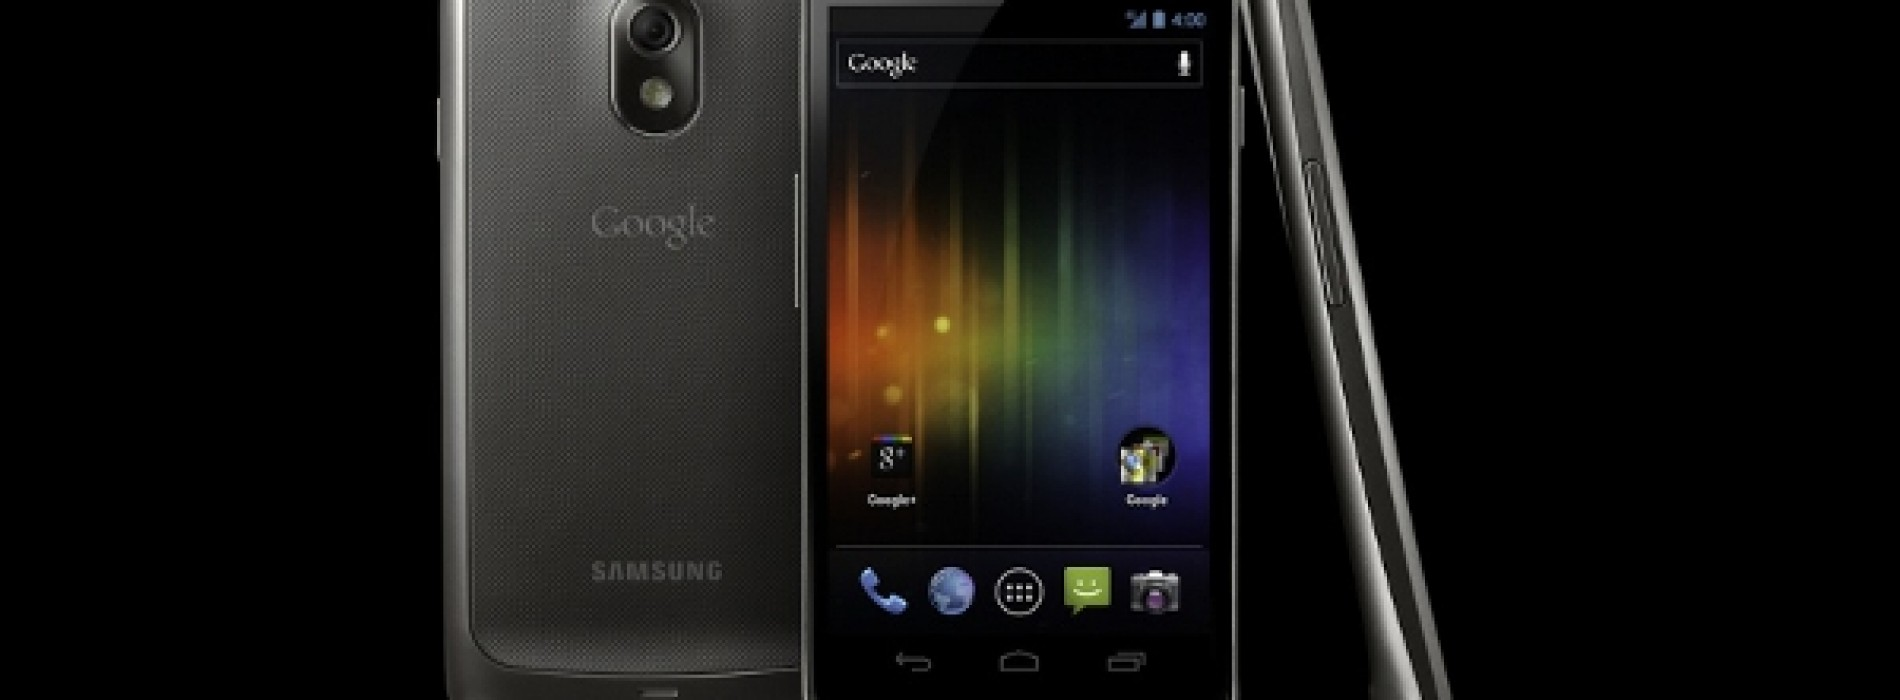 Samsung to tweak Galaxy Nexus CPU, camera?